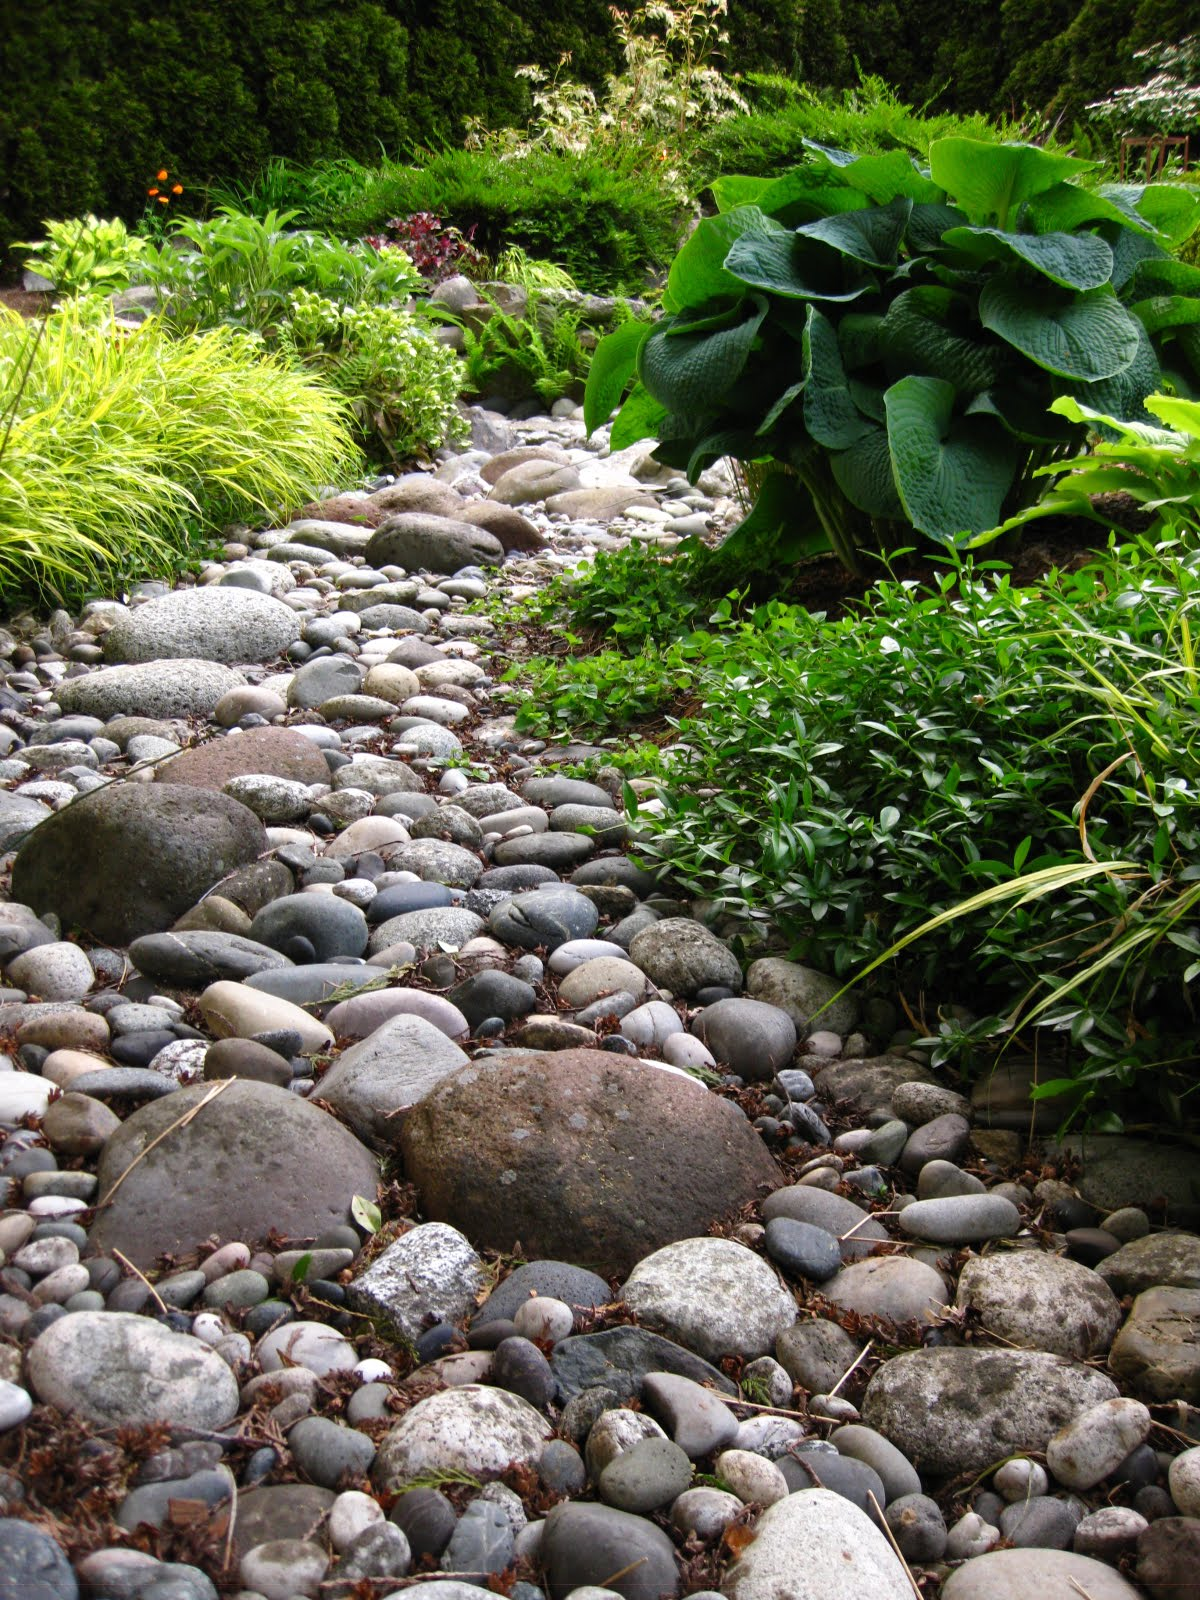 Landscaping With Rocks And Pebbles : Rock on river rocks landscaping and